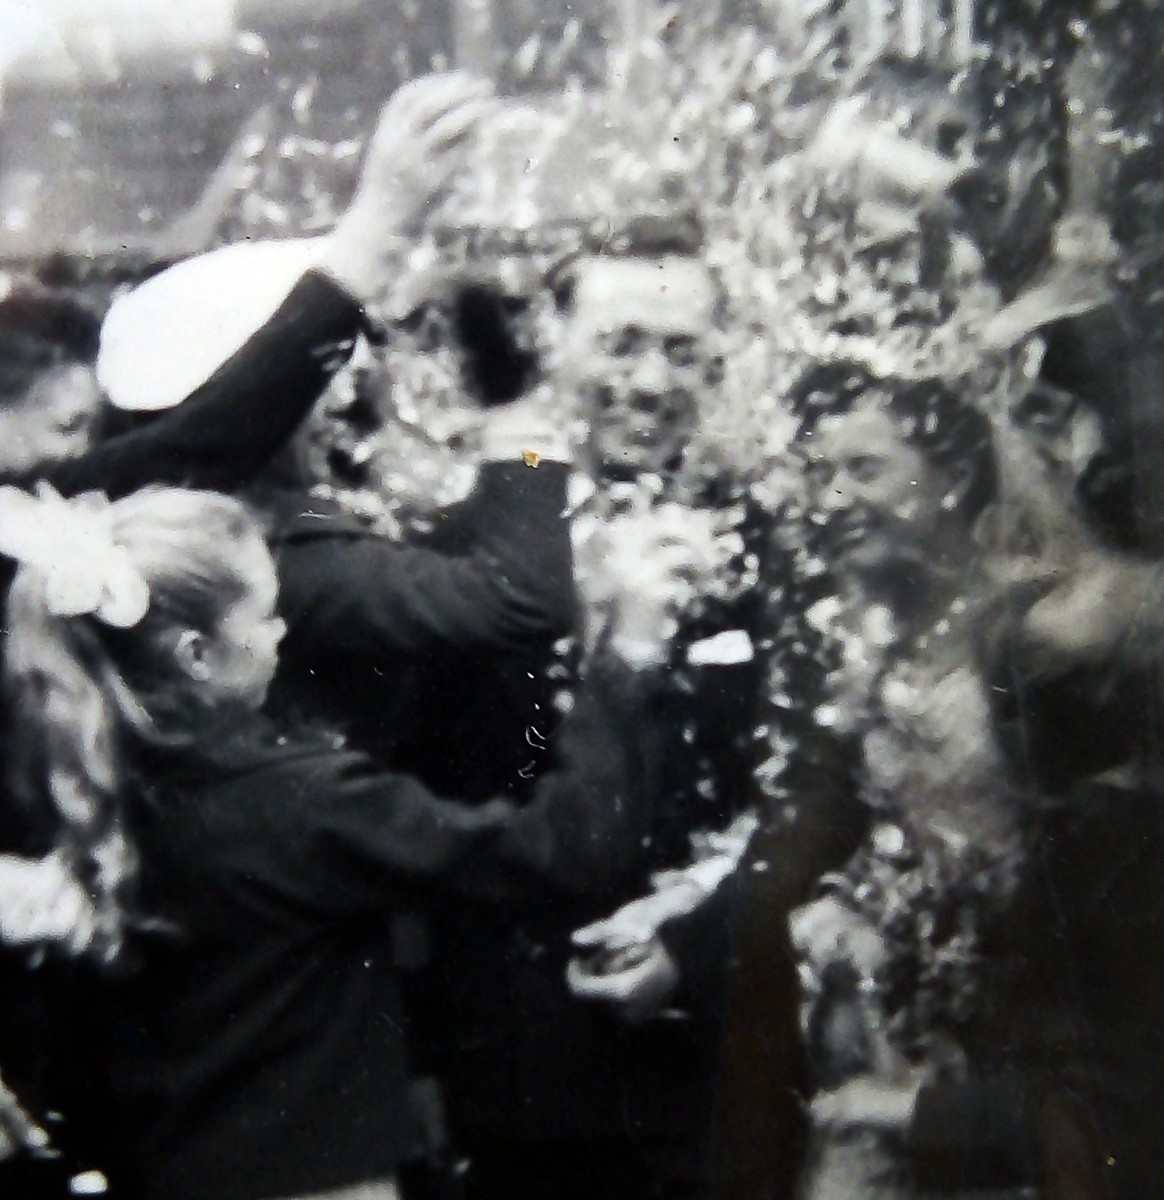 Throwing the confetti - mum and dad's wedding in 1957.